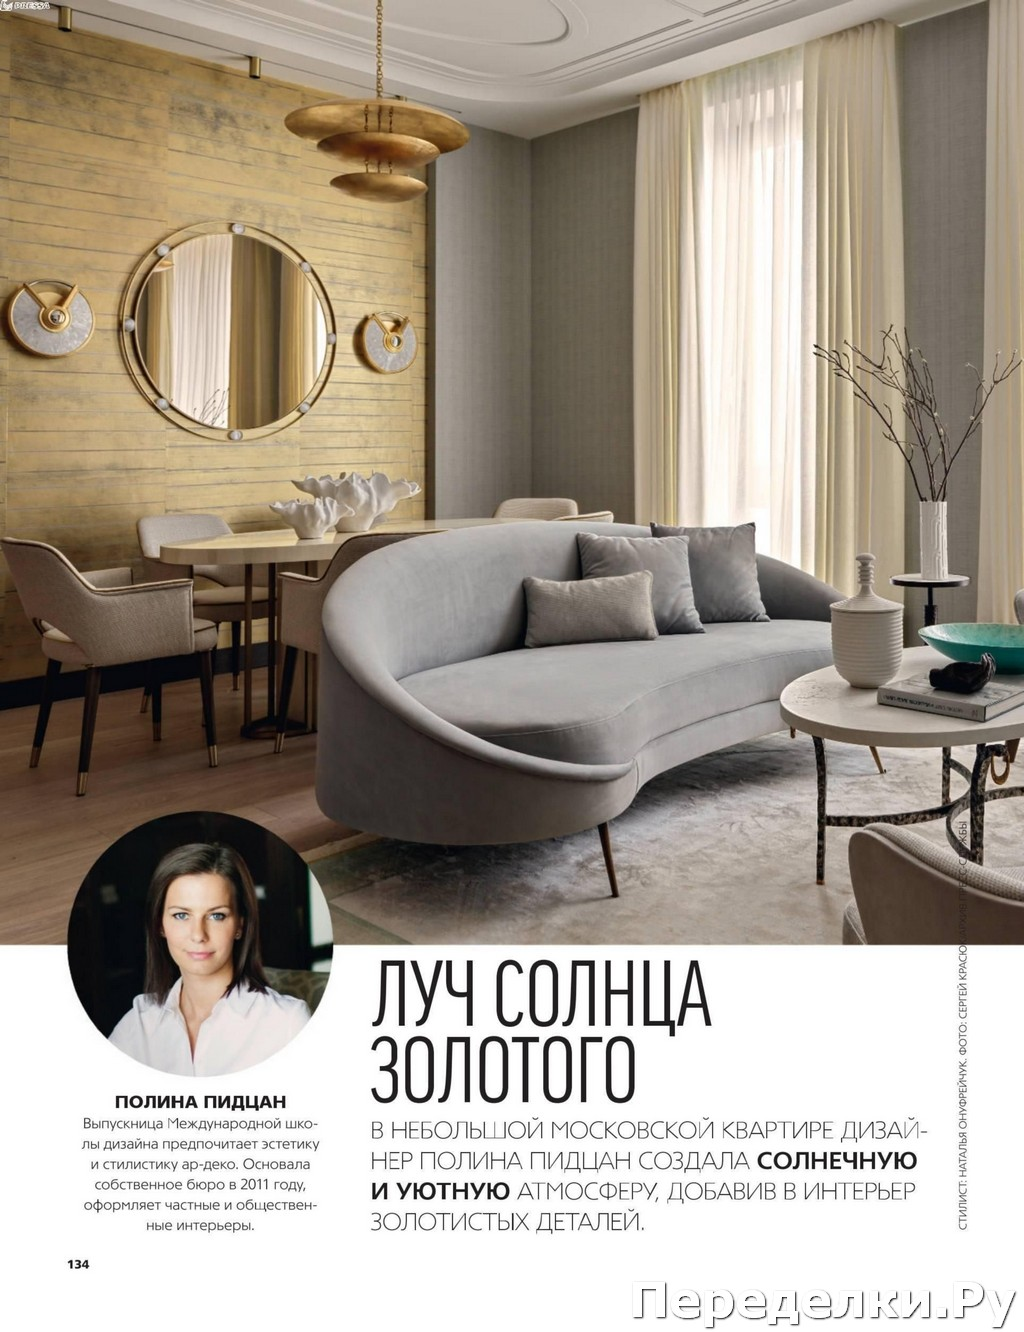 AD Architectural Digest 4 aprel 2020 129